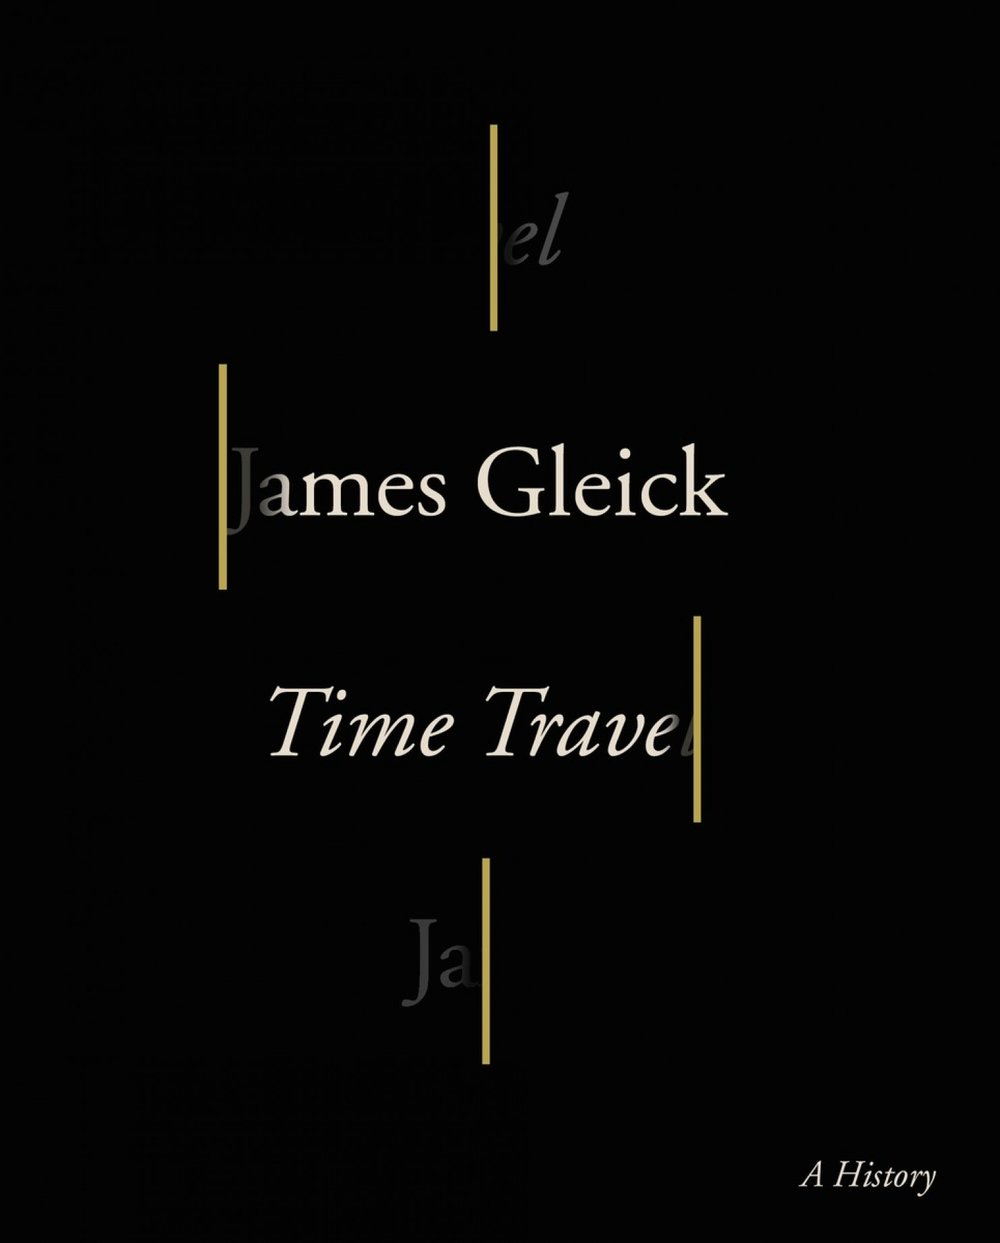 From the acclaimed author of THE INFORMATION and CHAOS, a mind-bending exploration of time travel: its subversive origins, its evolution in literature and science, and its influence on our understanding of time itself.